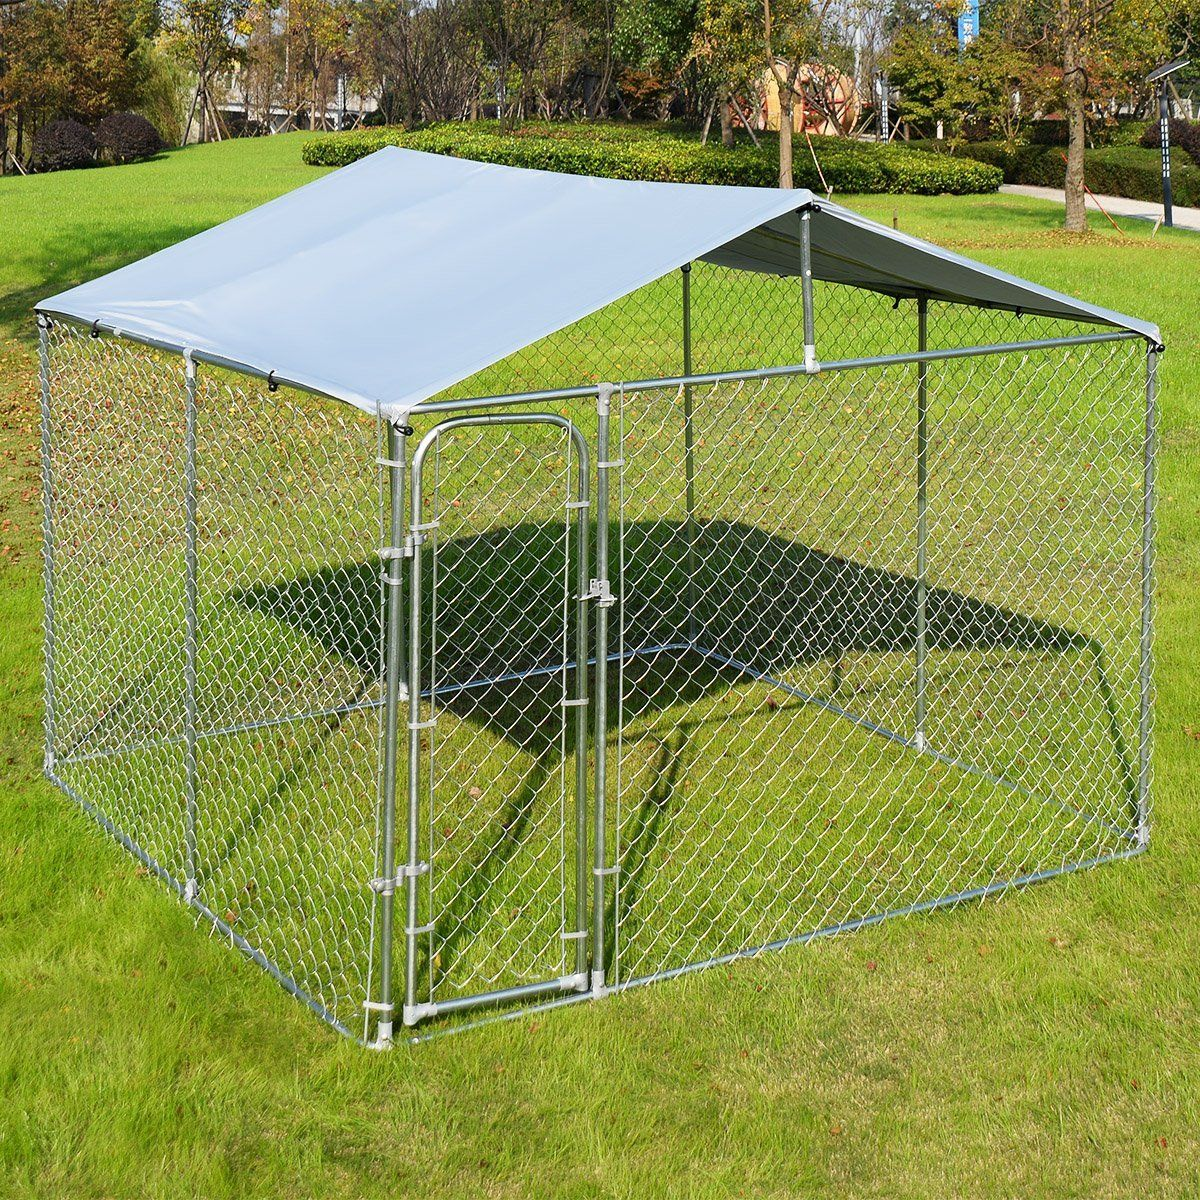 Giantex Large Pet Dog Run House Kennel Shade Cage Roof Cover Backyard Playpen Dog Kennel Kennel Cover 10 X 10 Descriptio Canil Ideias De Casas Casas Novas